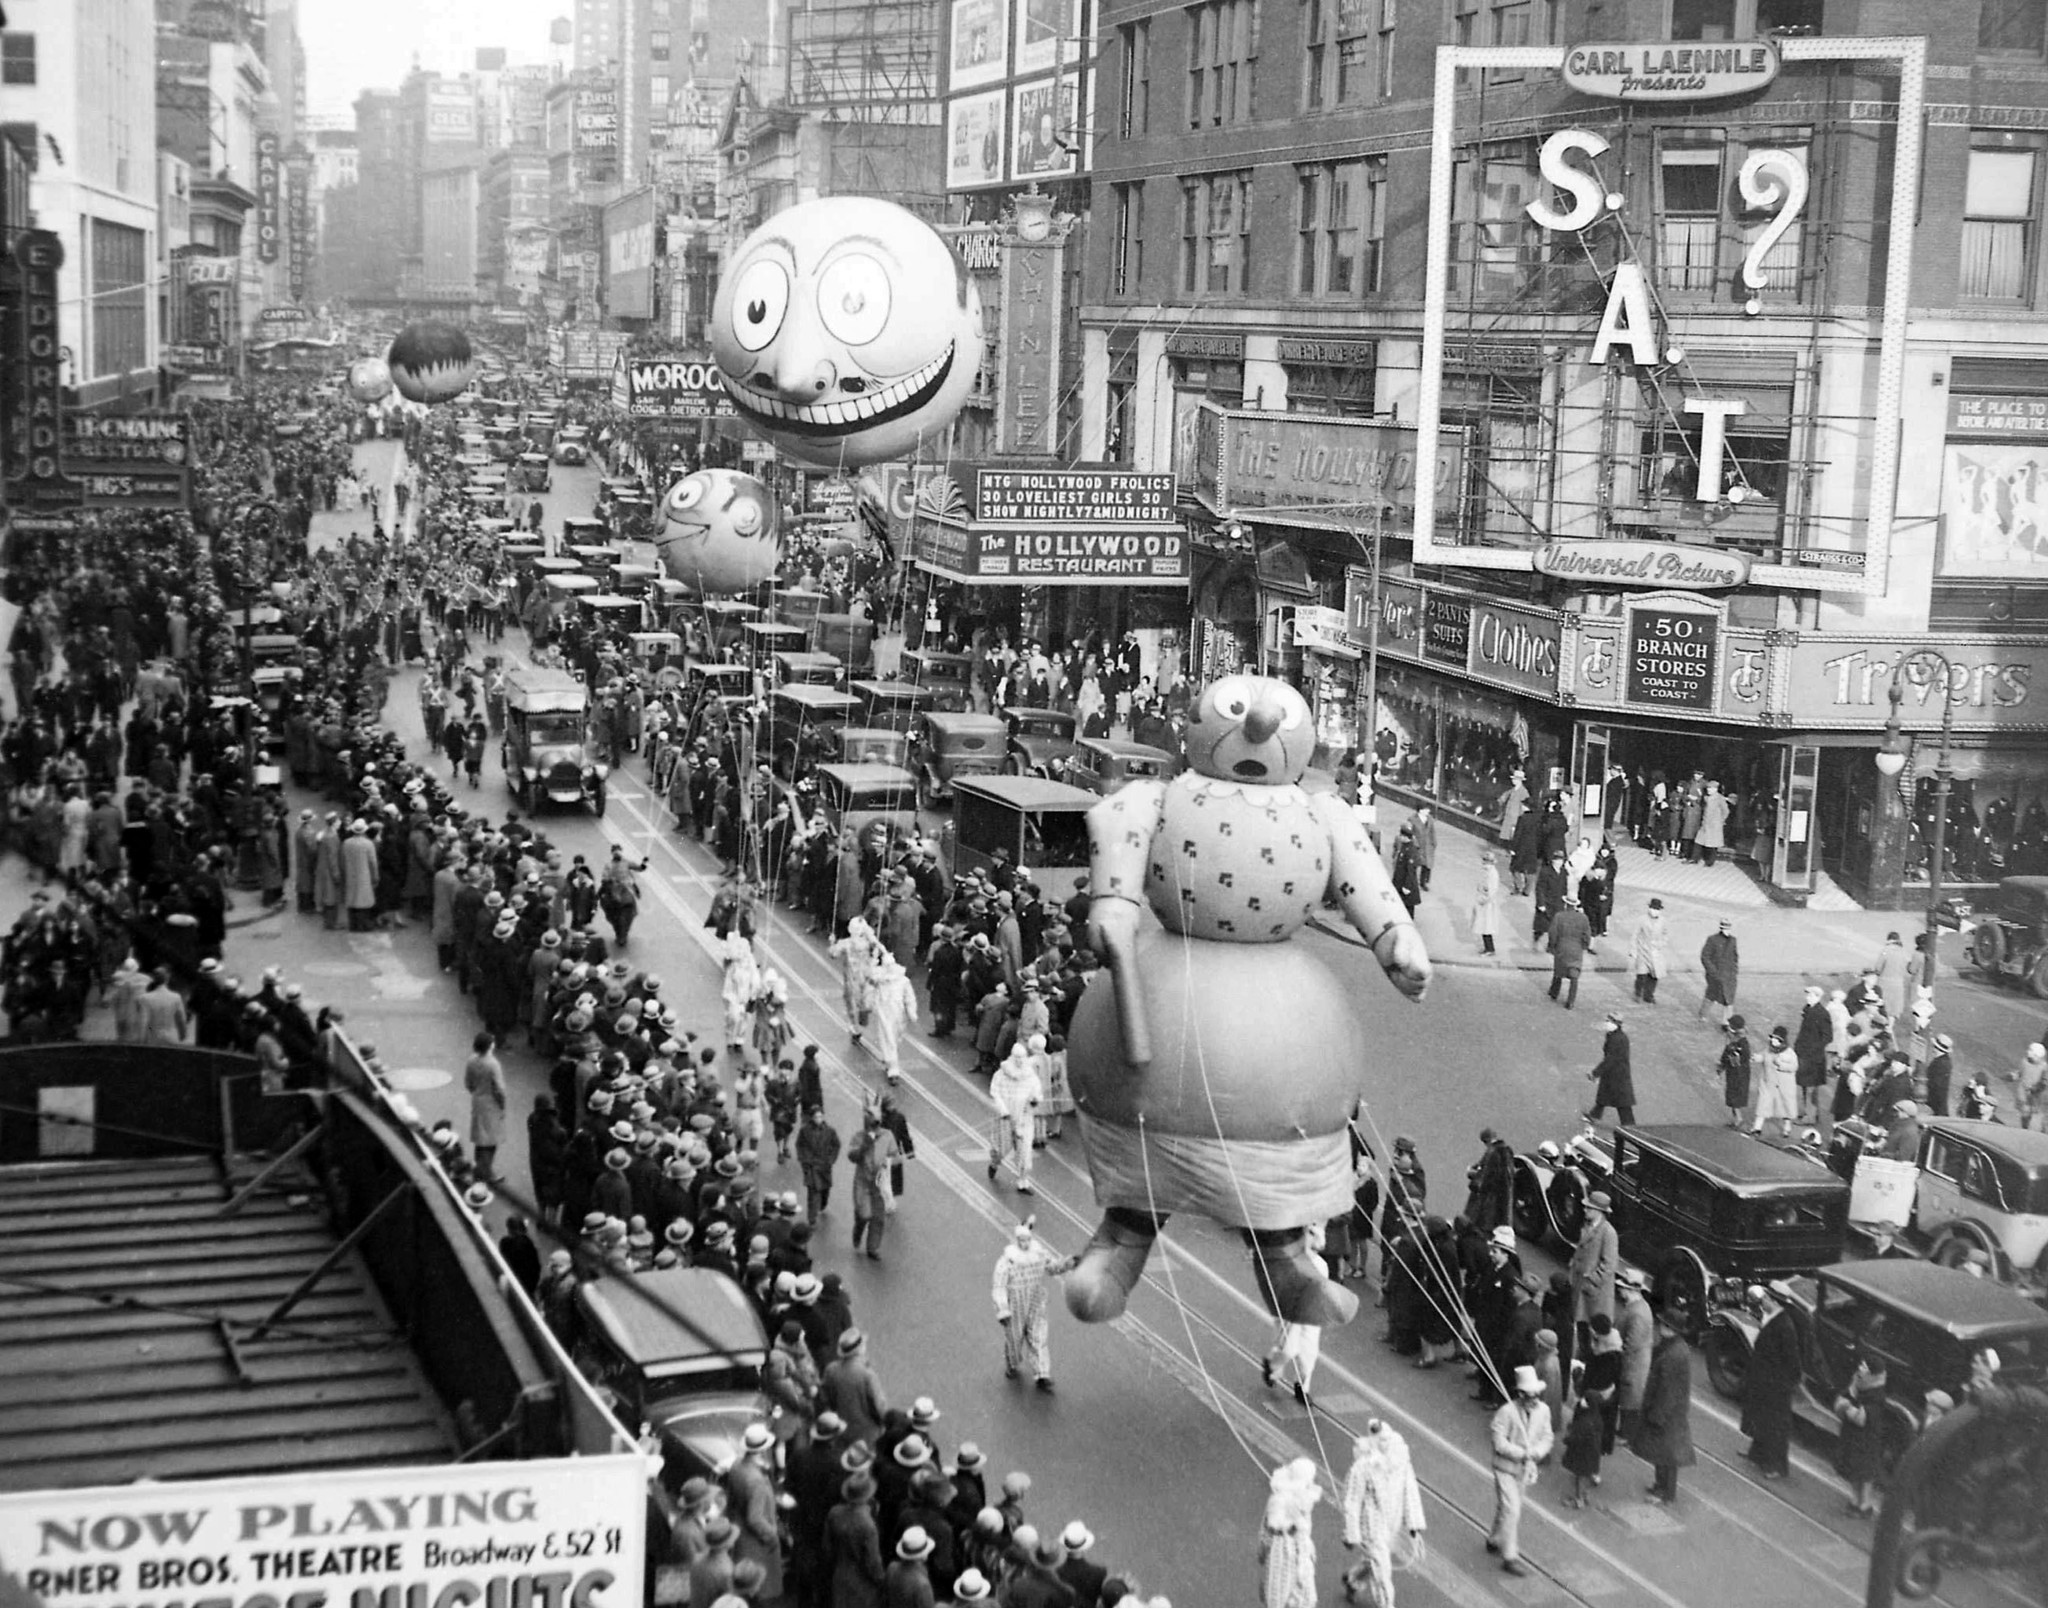 mc-things-you-didnt-know-about-macys-thanksgiving-day-parade-20151125.jpg